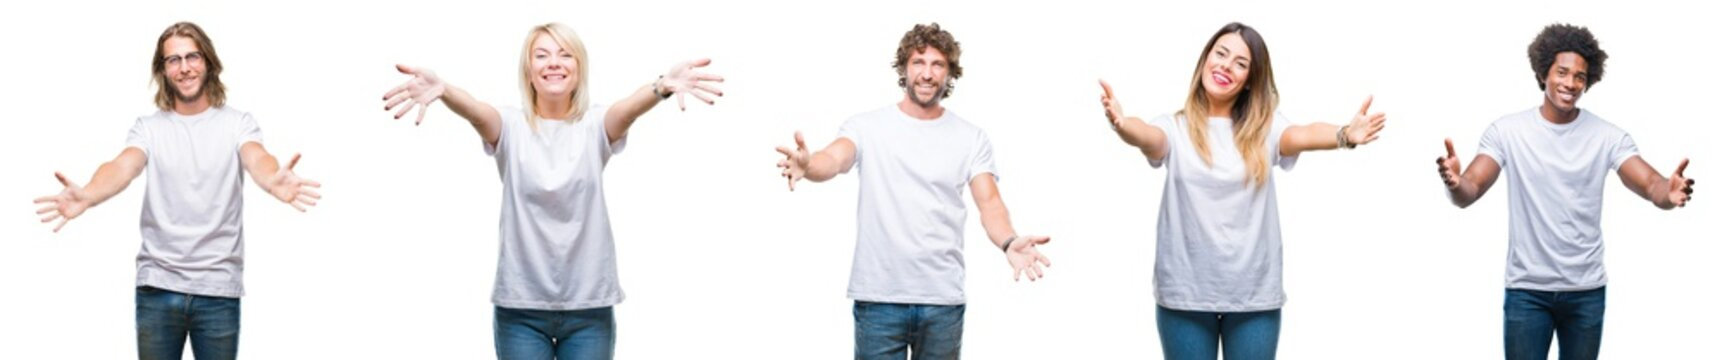 Collage of group of people wearing casual white t-shirt over isolated background looking at the camera smiling with open arms for hug. Cheerful expression embracing happiness.